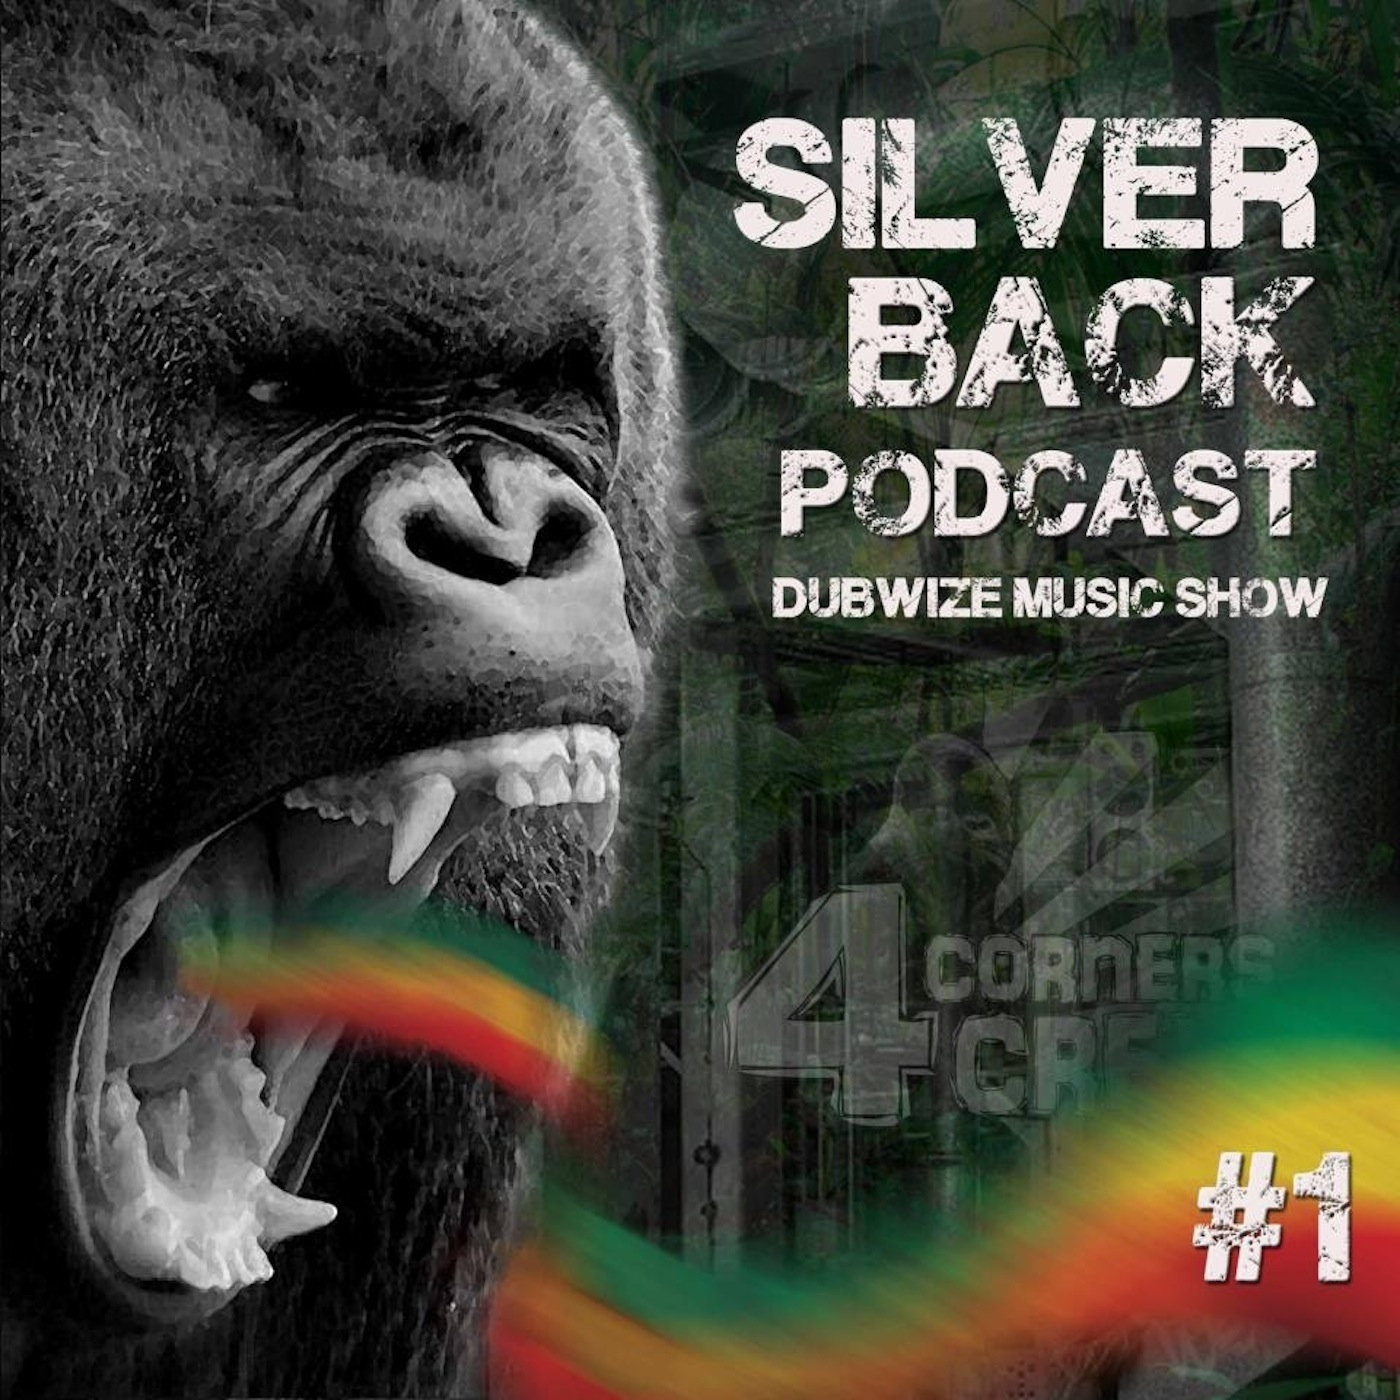 Silverback Dubwize Podcast